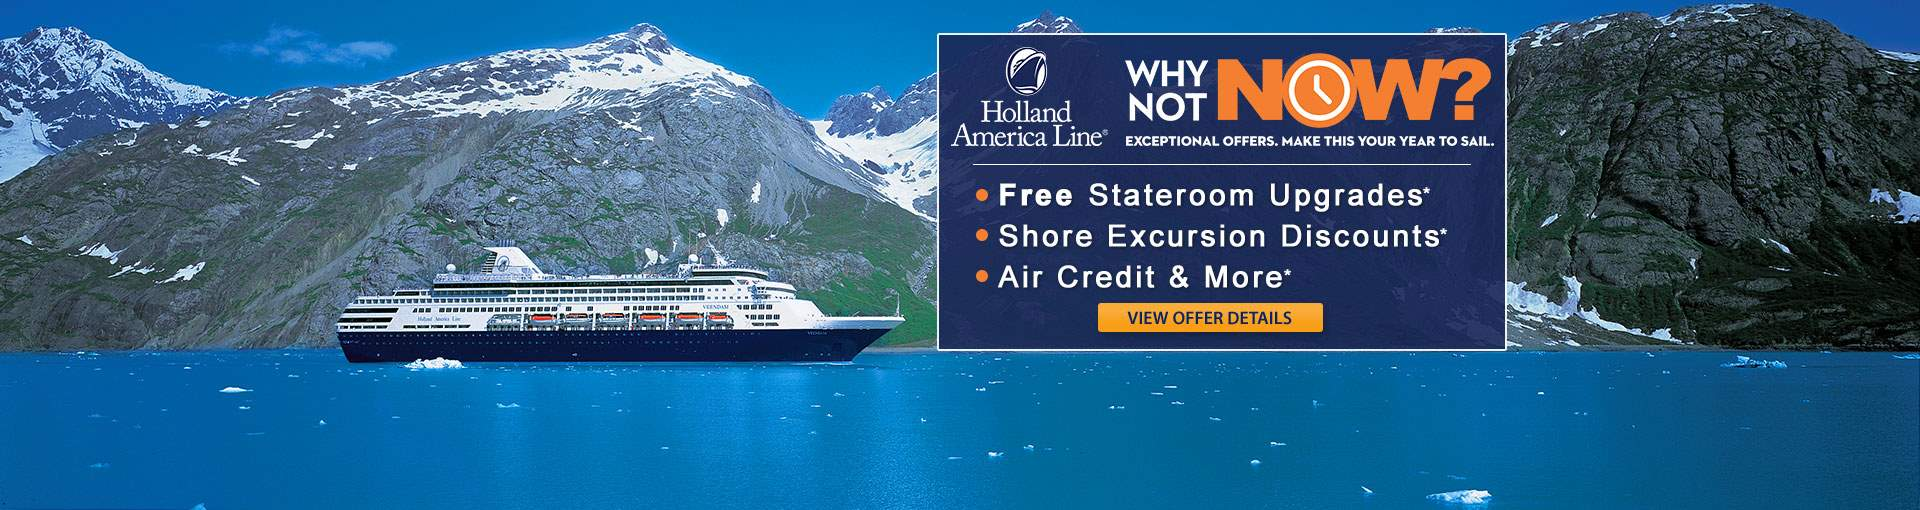 Holland America: Why Not Now Sale